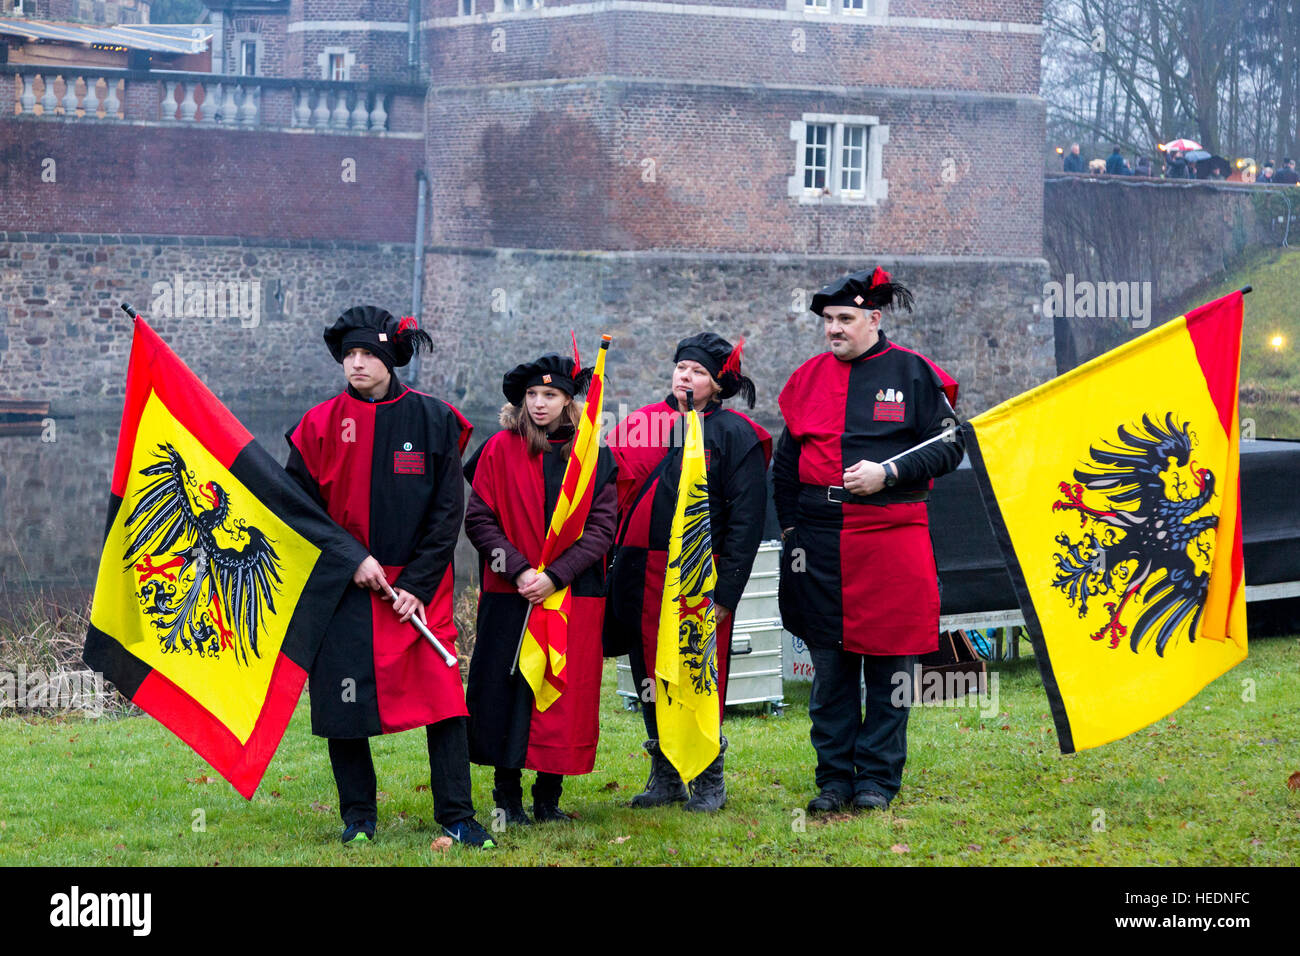 17 december 2016 traditional costume group with flags from the netherlands thousands attend the traditional christmas market at moated castle schloss - Traditional Castle 2016